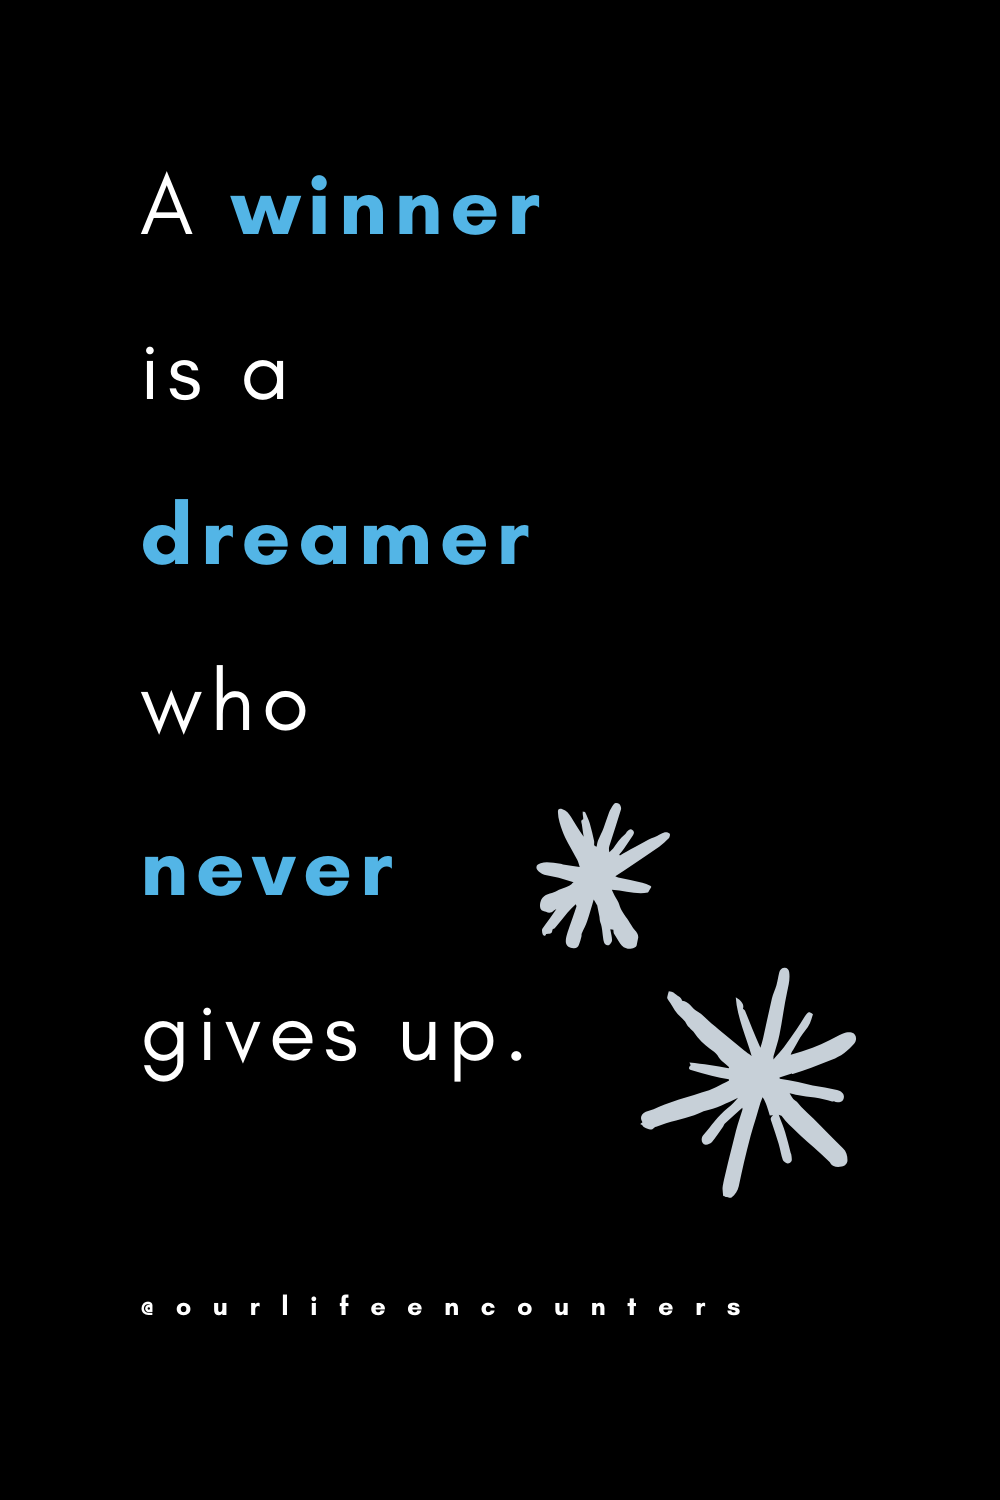 A winner is a dreamer who never gives up. #nevergiveup #motivation #dreams